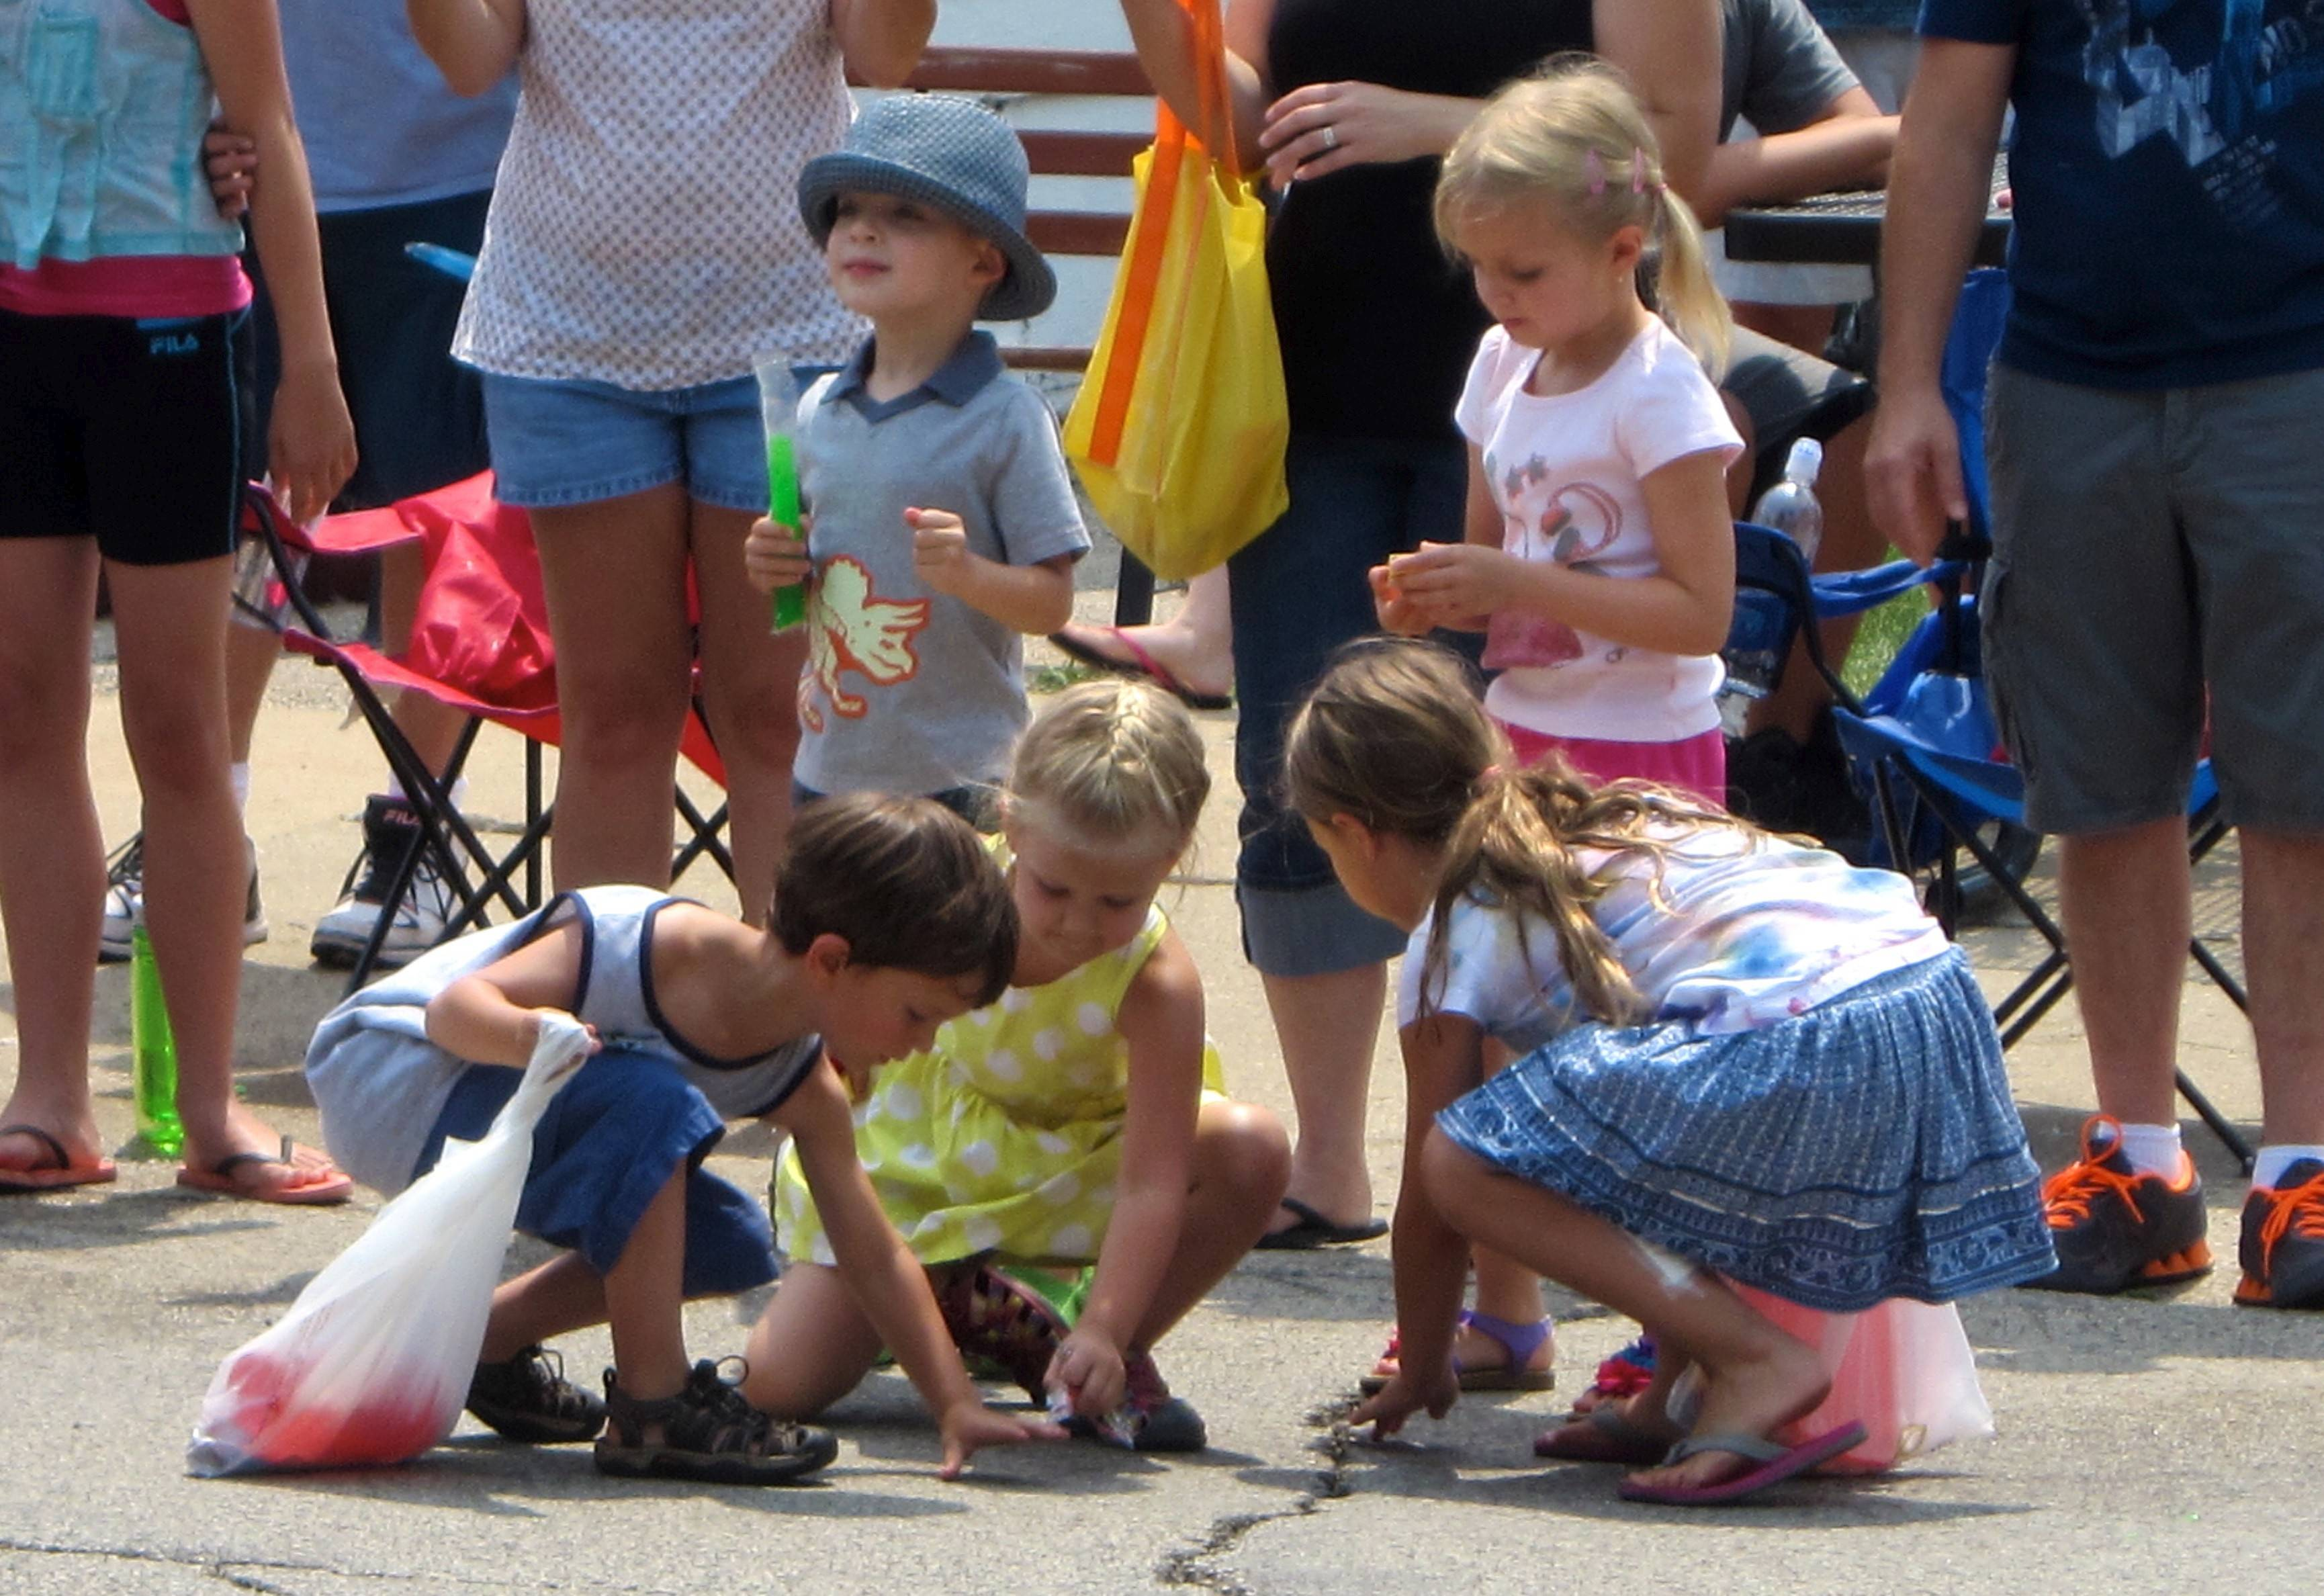 Children scramble to pick up candy thrown by marchers in the annual Alpine Fest Parade on Sunday in downtown Lake Zurich. The parade kicked off the last day of the annual summer event Alpine Fest.